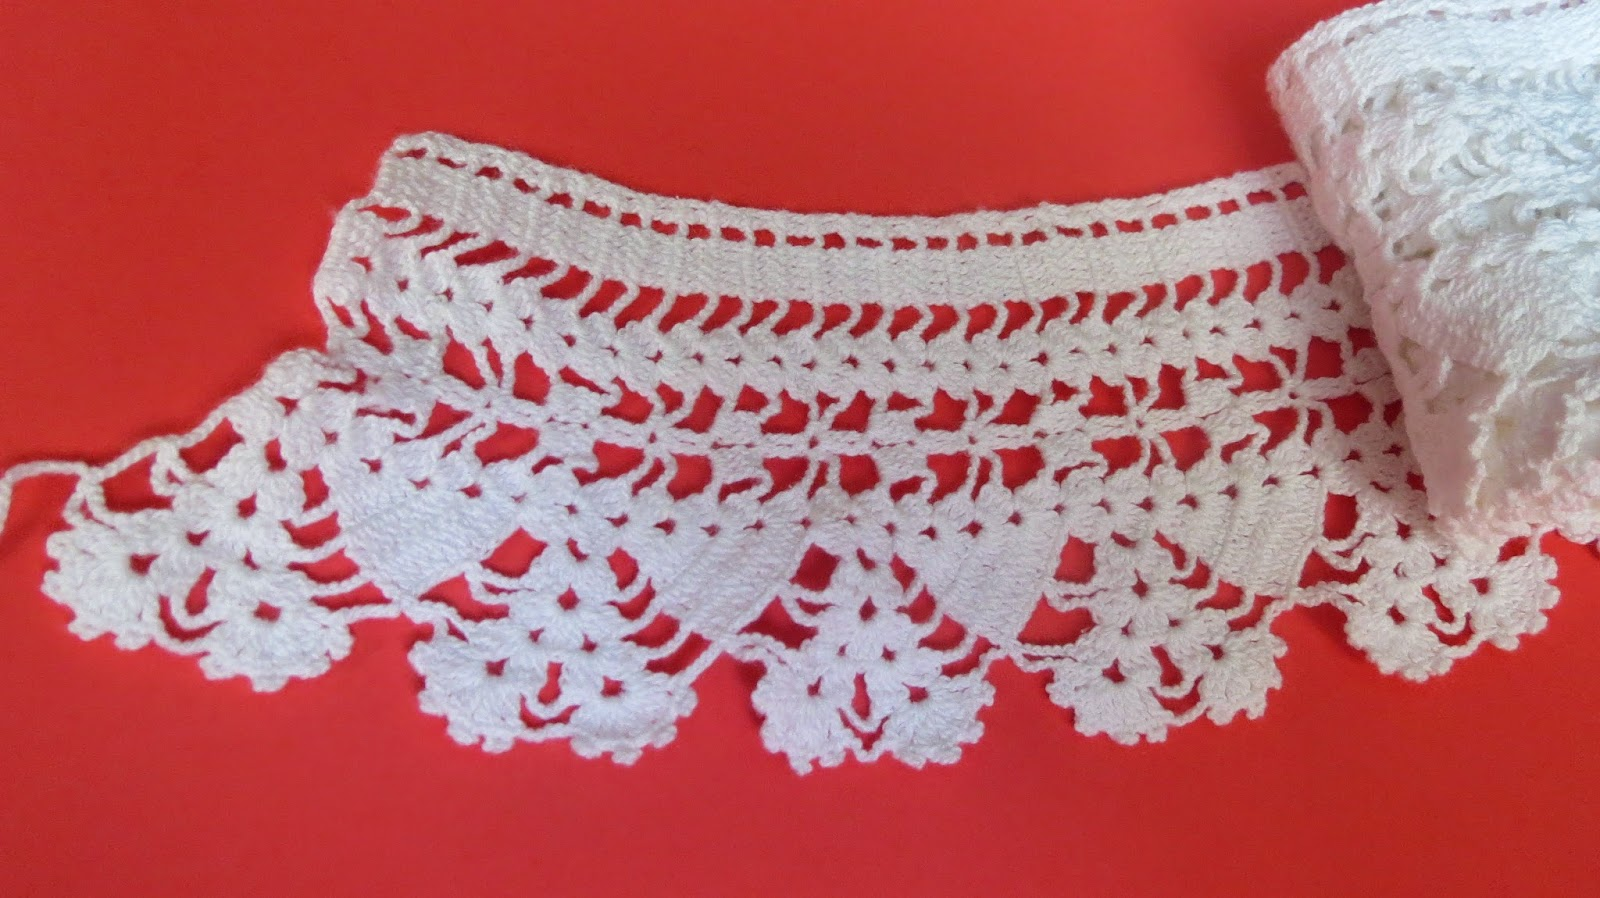 Sunshines creationsntage threads inc lace edging free pattern i figured it was a pretty simple pattern but elegant so i wanted to copy it and figured others might like it too bankloansurffo Image collections